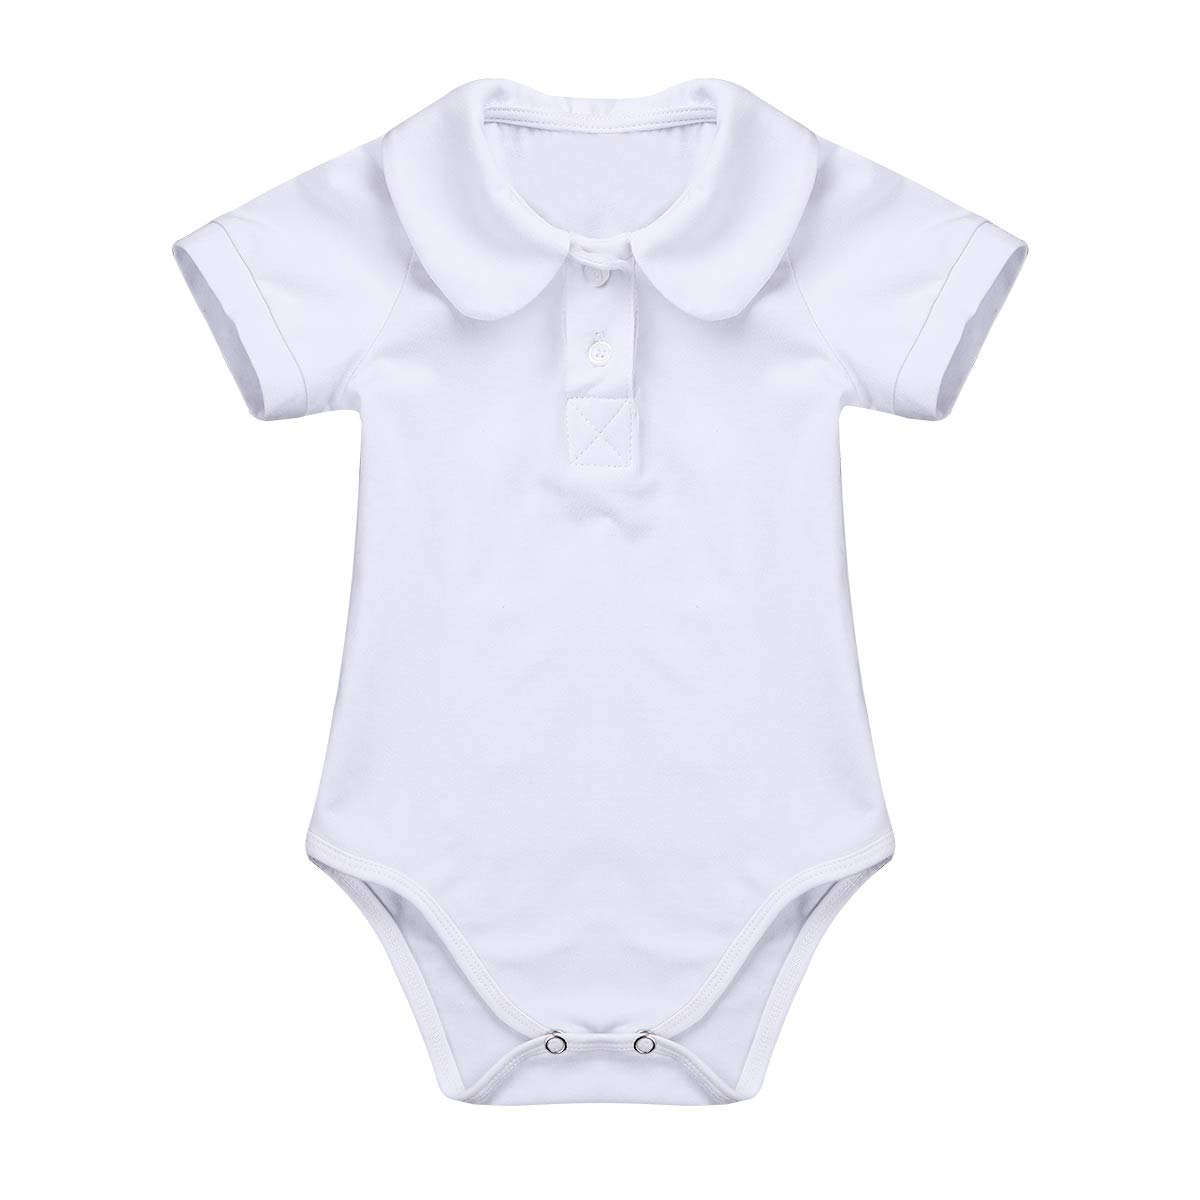 YiZYiF Infant Baby Boys' Basic Cotton Short Sleeve Collared Polo Bodysuit Formal Party Christening Outfits Tops